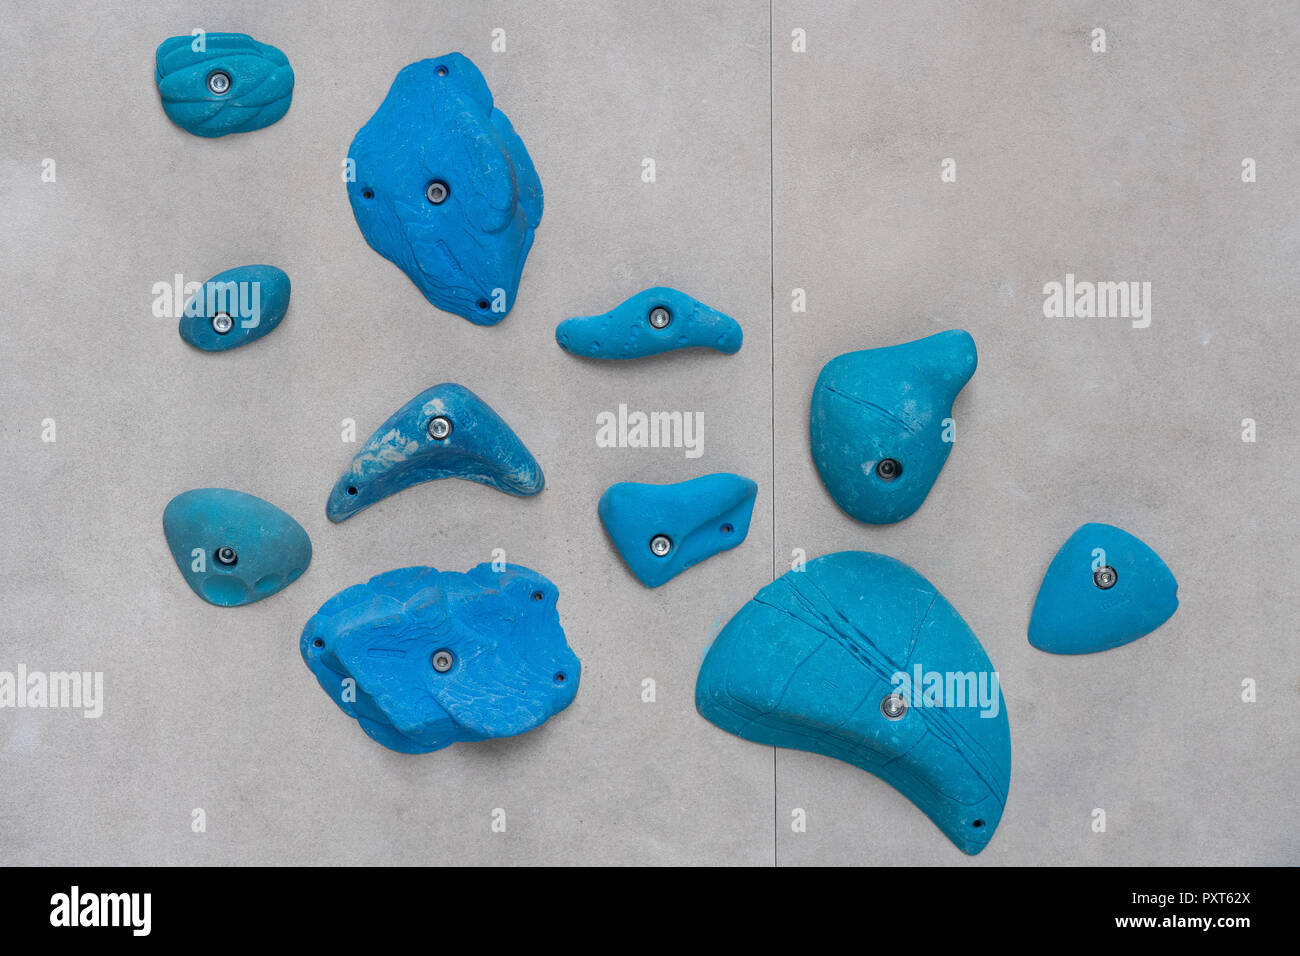 Blue via ferrules or climbing grips on grey wall, Germany - Stock Image